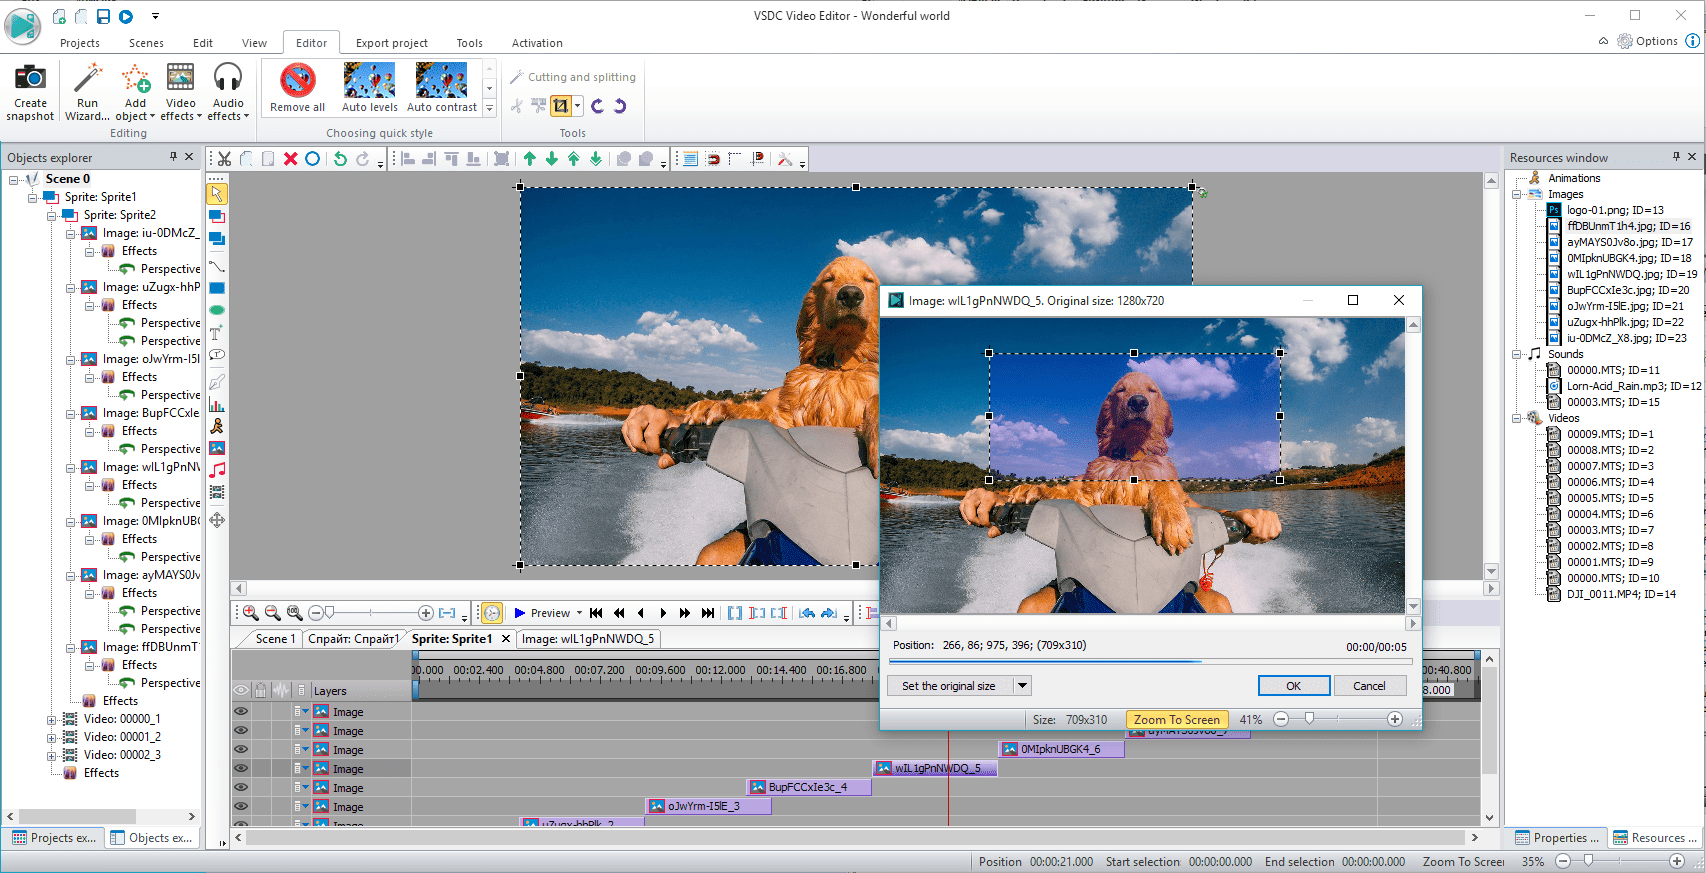 vsdc-free-video-editor-screenshot.jpg